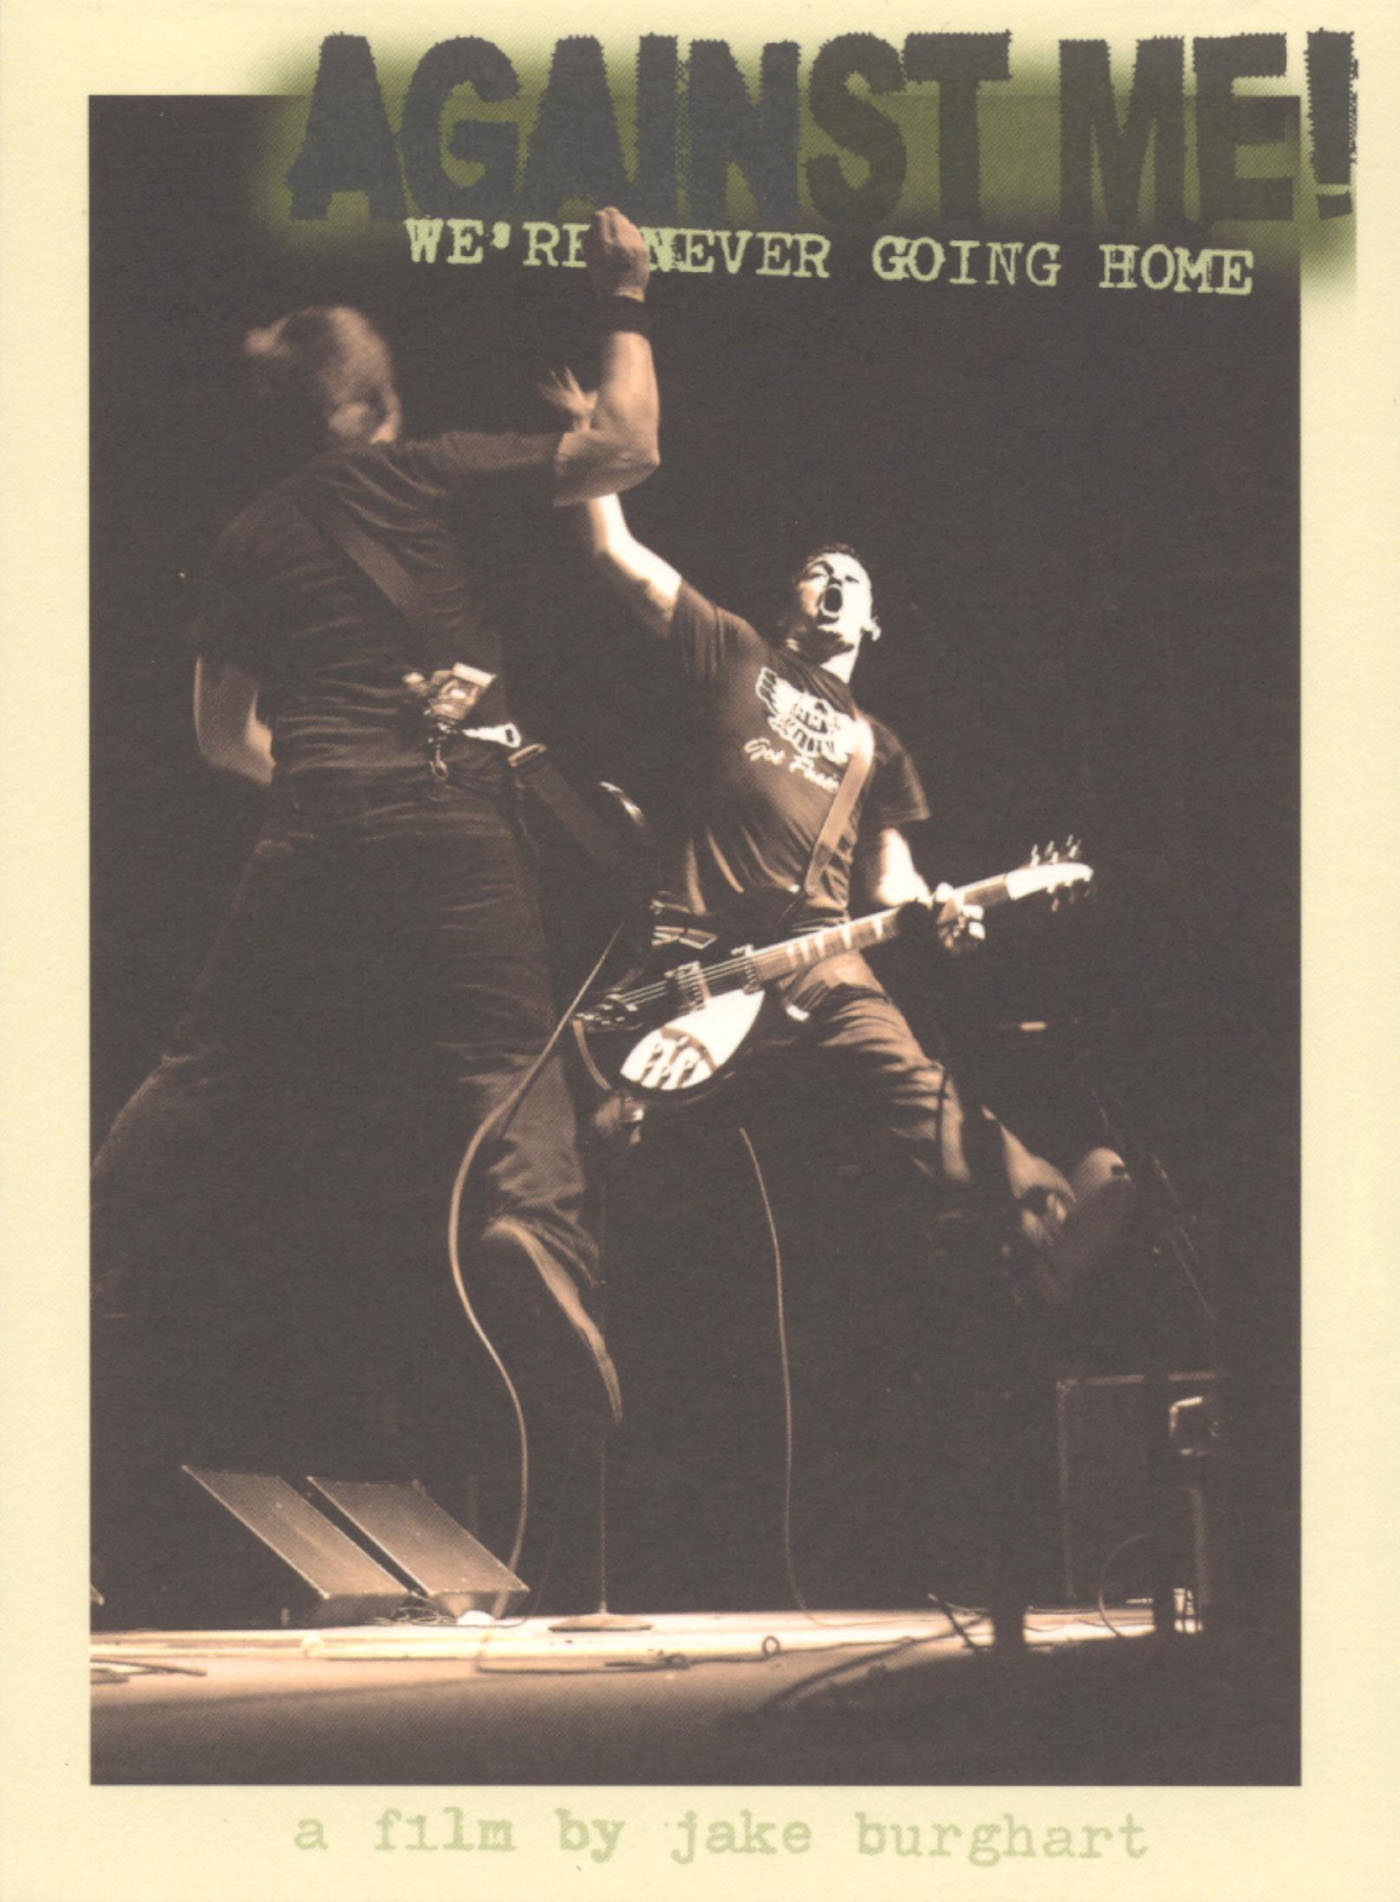 Against Me! We're Never Going Home